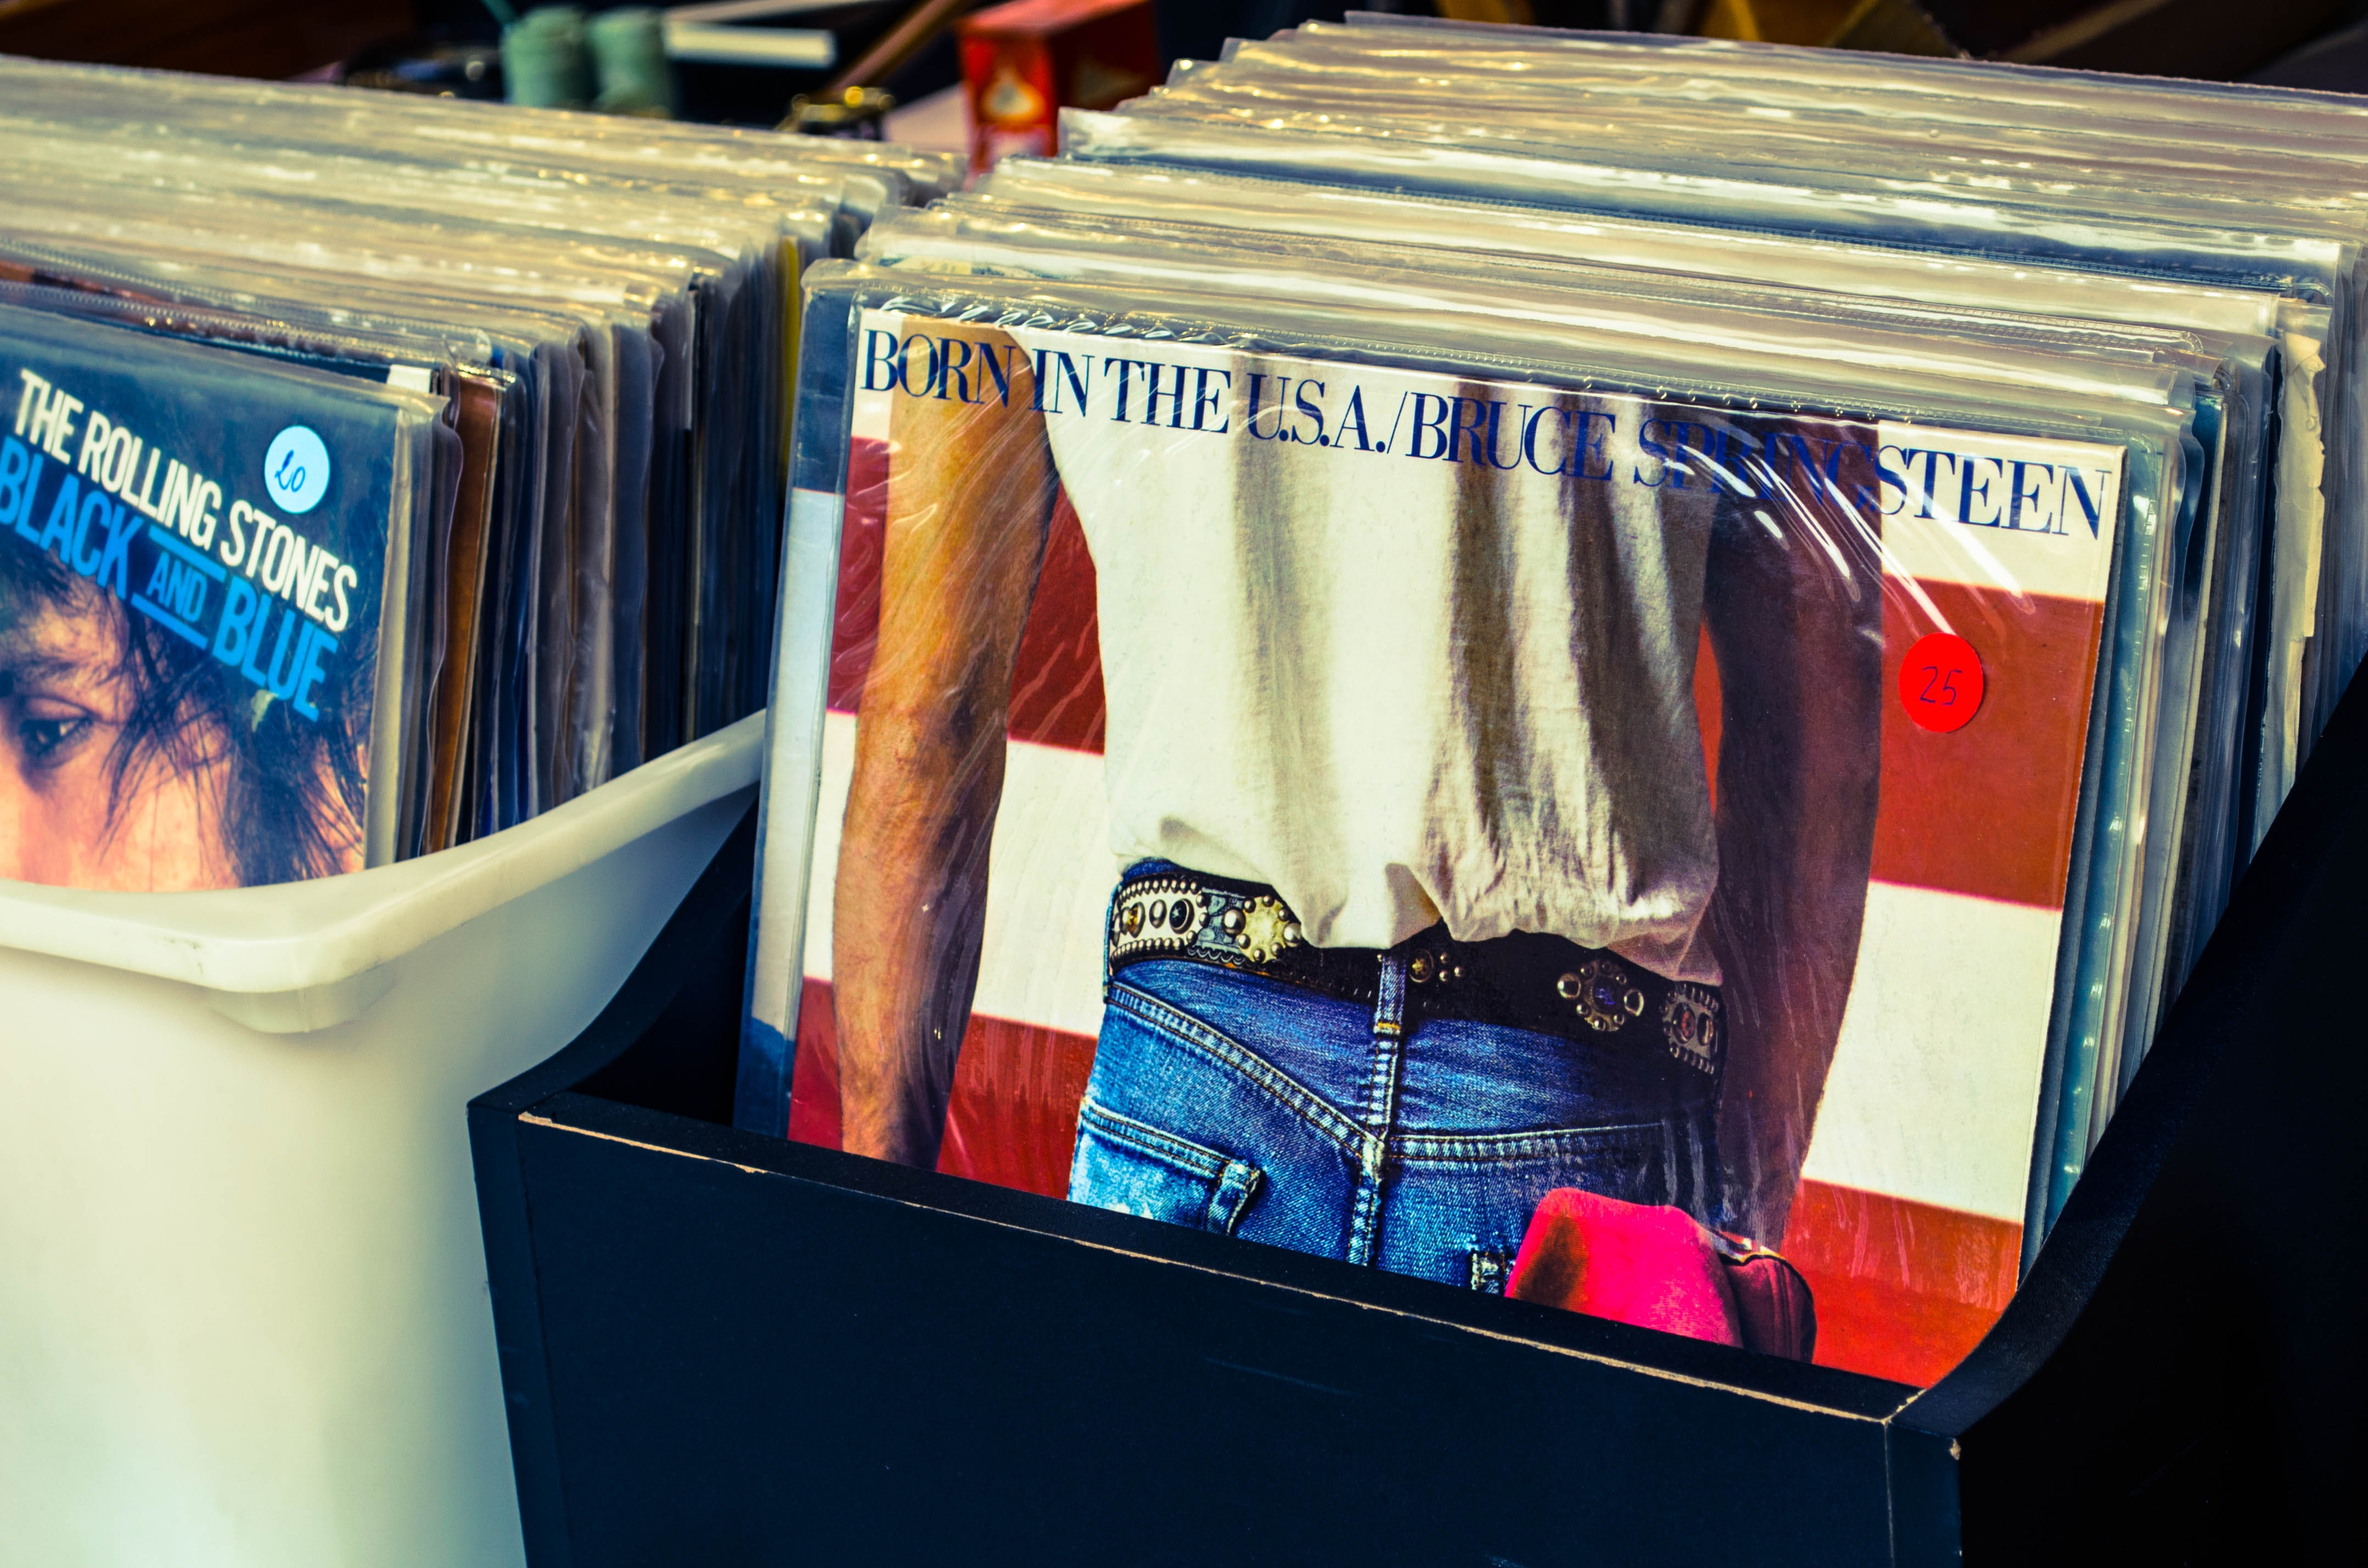 An assortment of record albums, with Bruce Springsteens 'Born in the U.S.A' most prominent